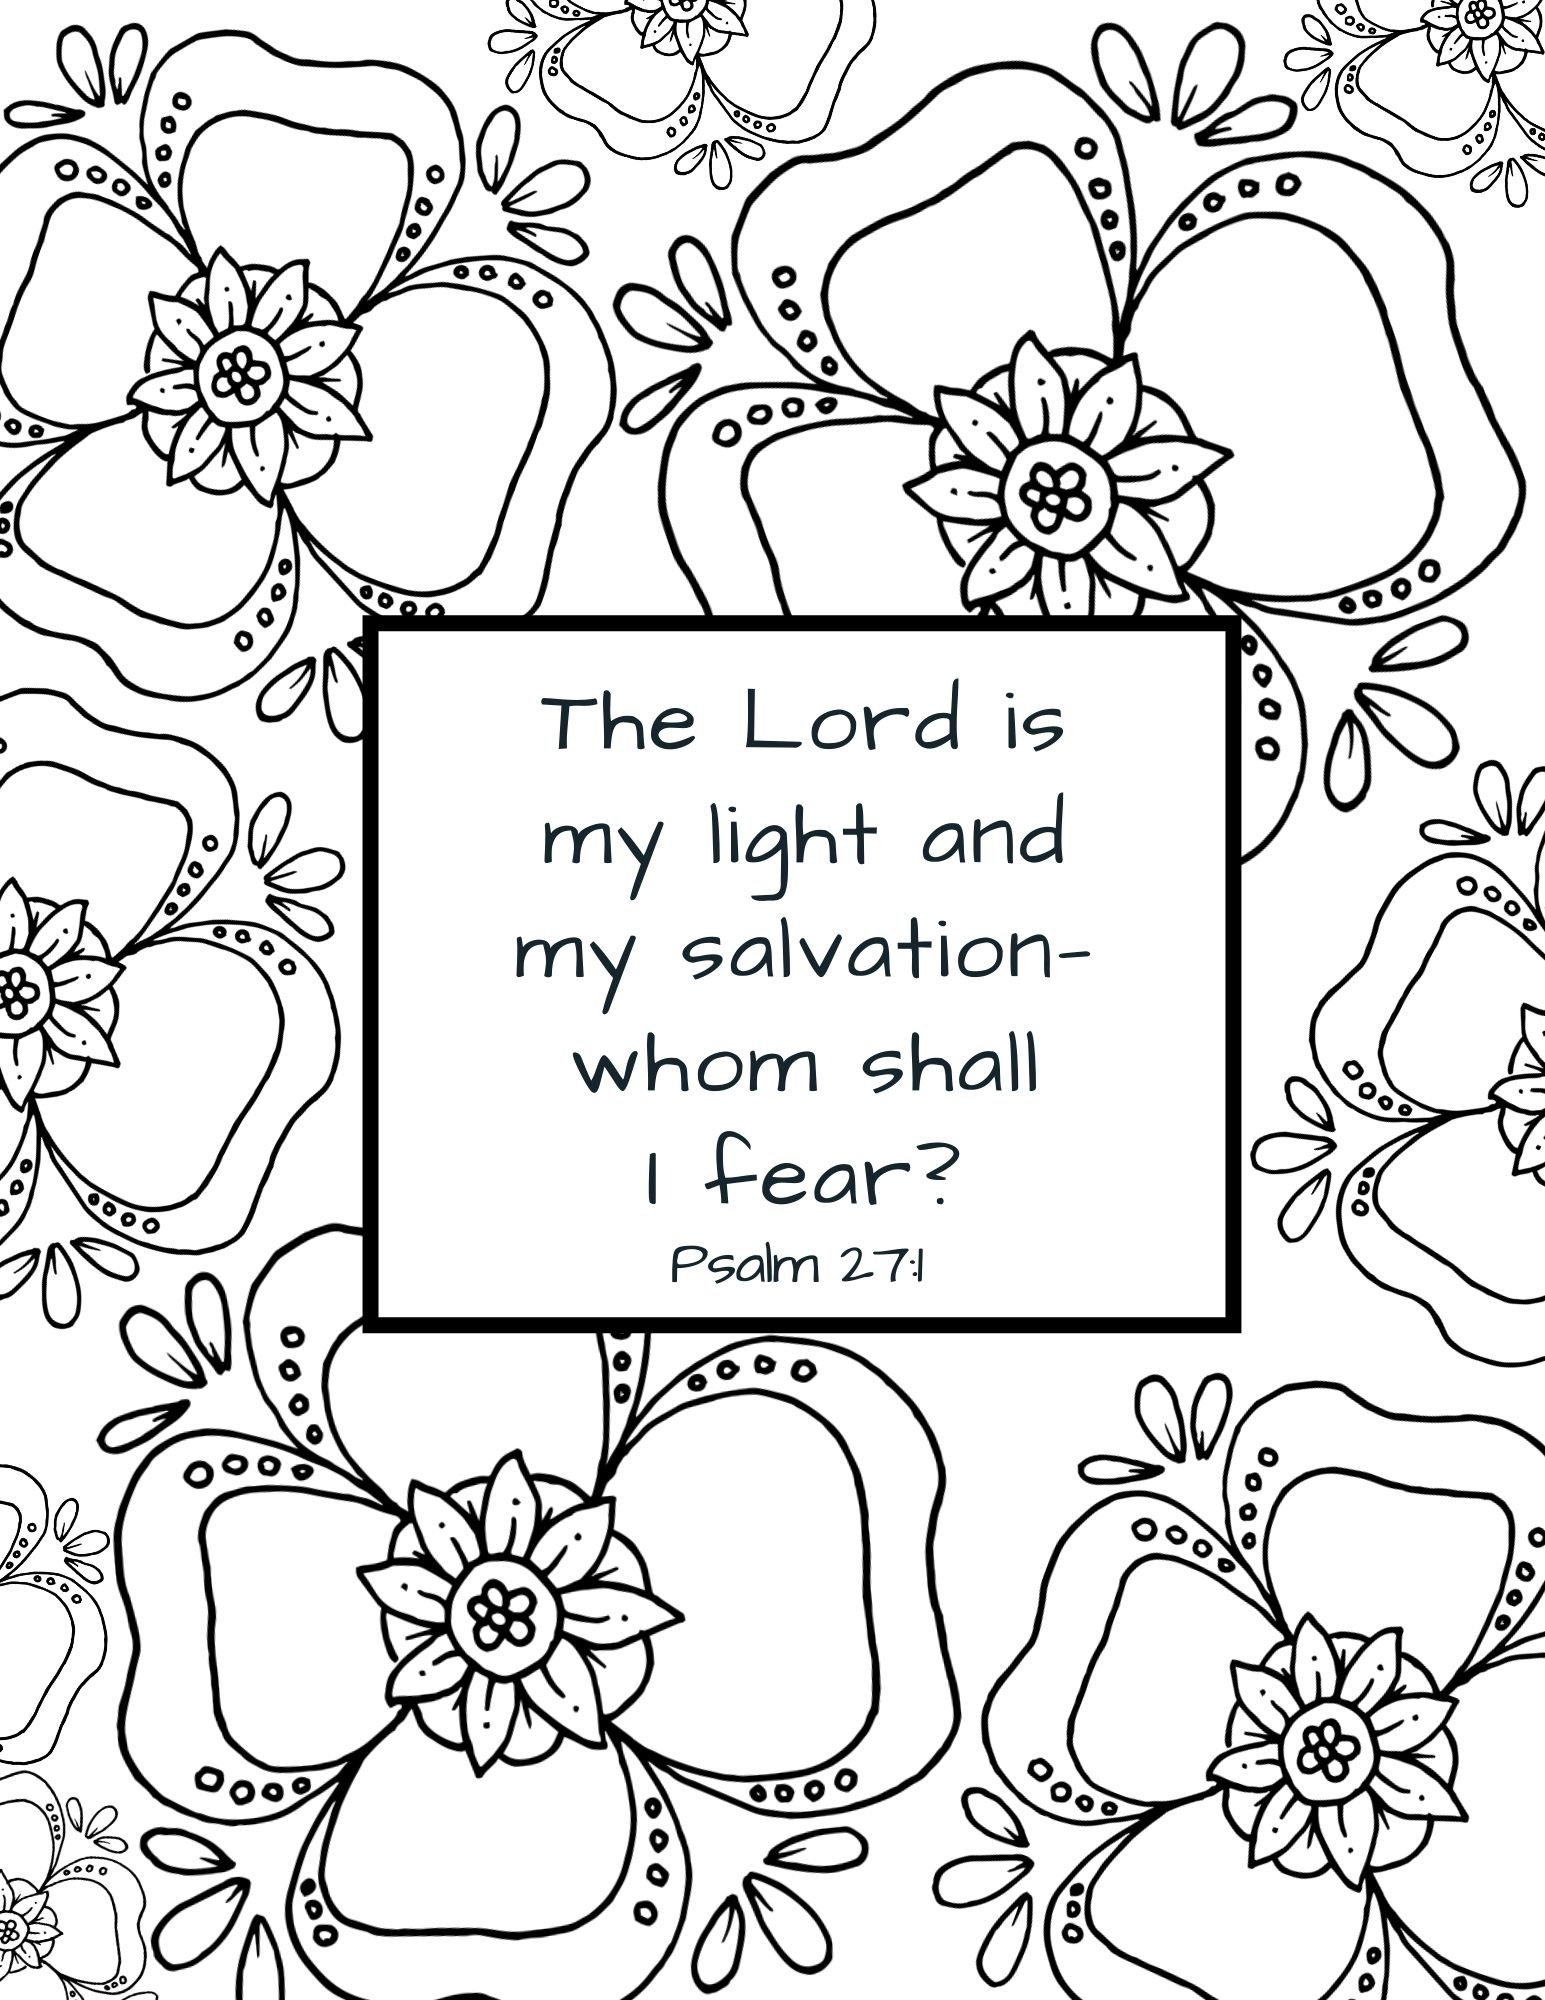 bible-verse-coloring-page-5